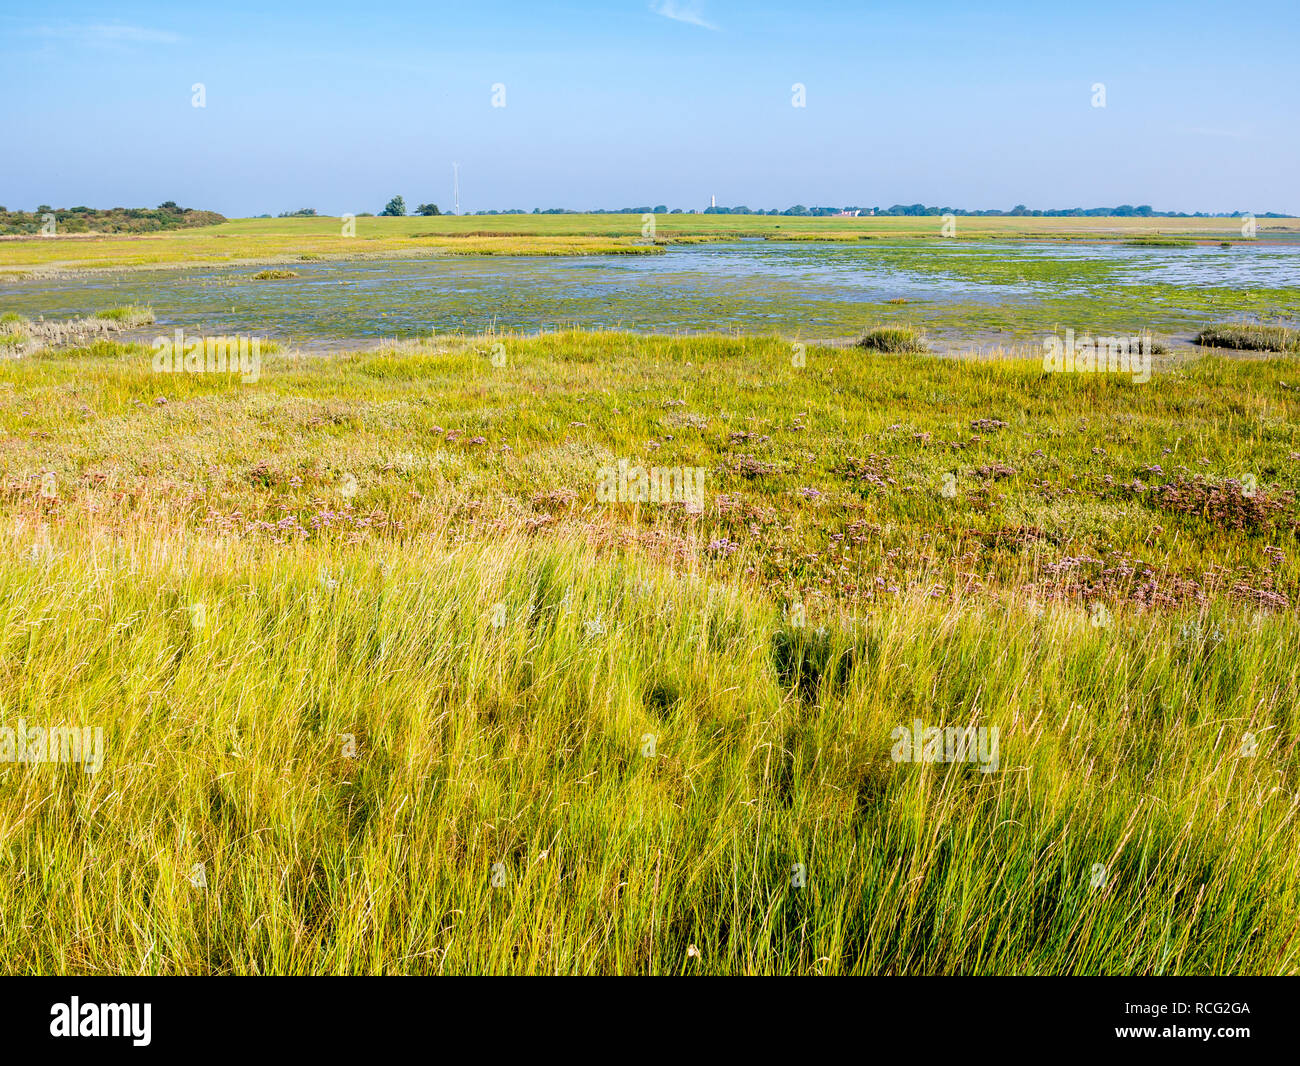 Panorama of salt marshes and tidal flats at low tide of Wadden Sea on West Frisian island Schiermonnikoog, Netherlands Stock Photo